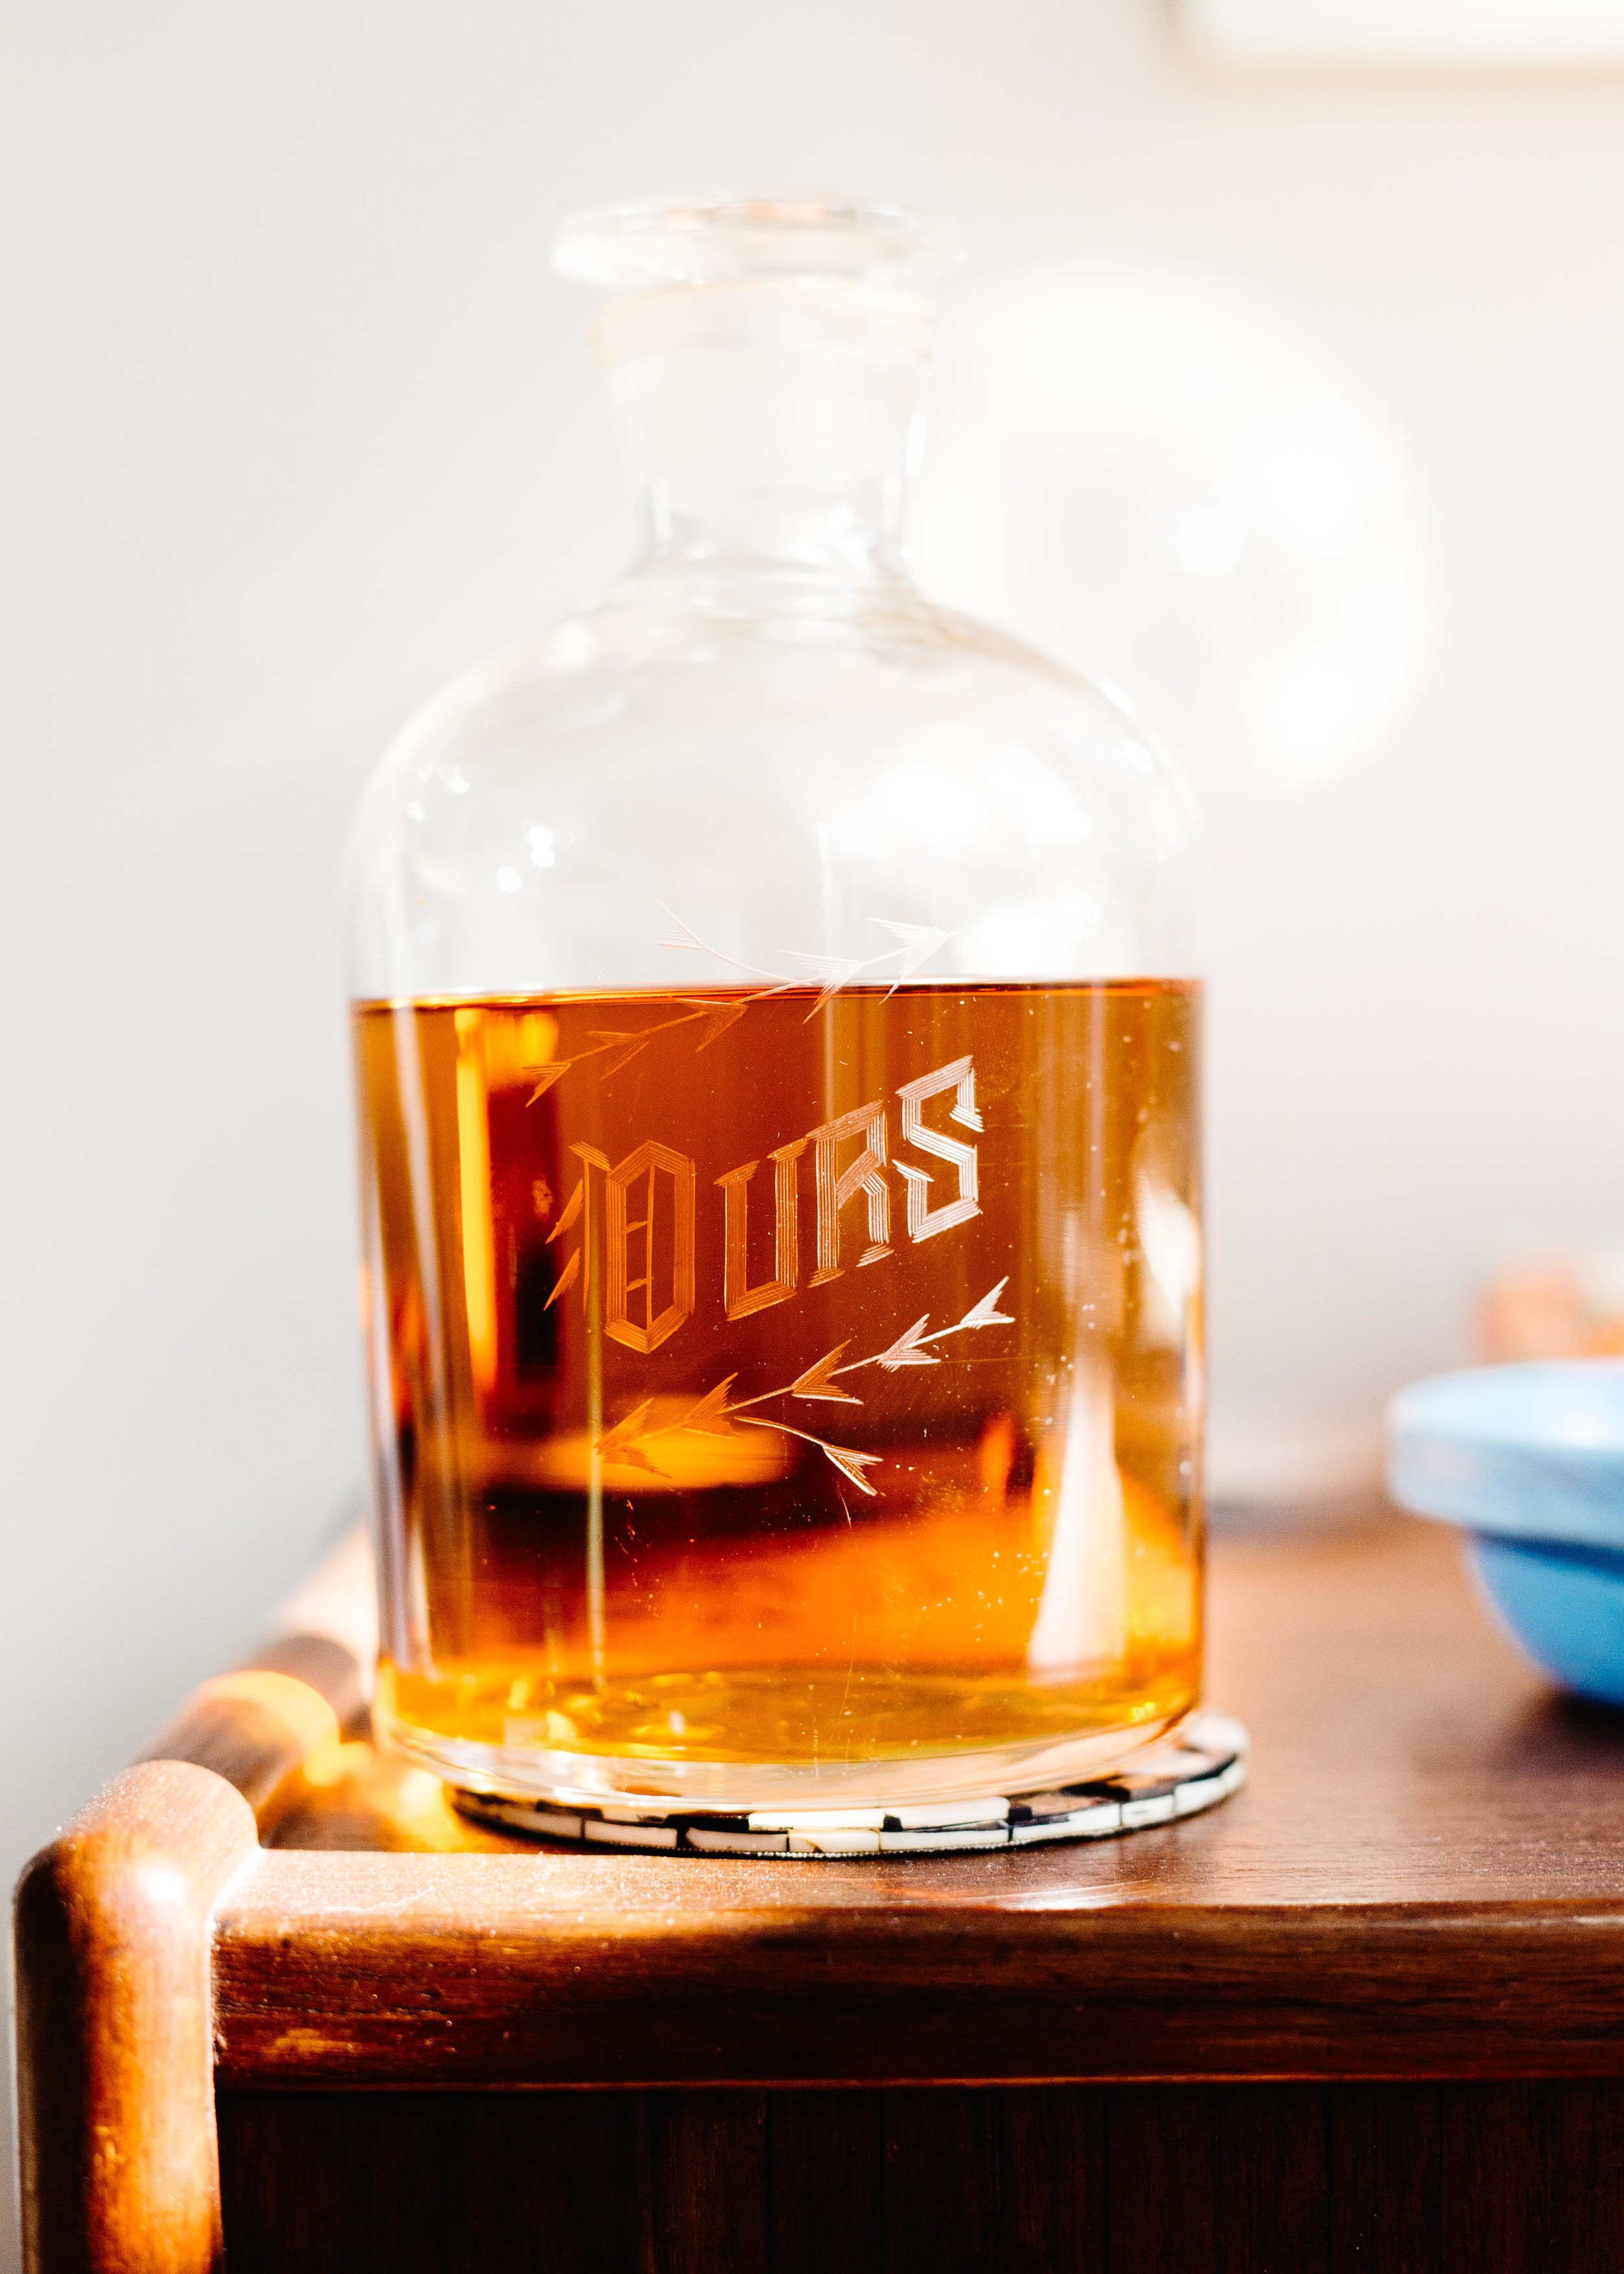 Ours Decanter